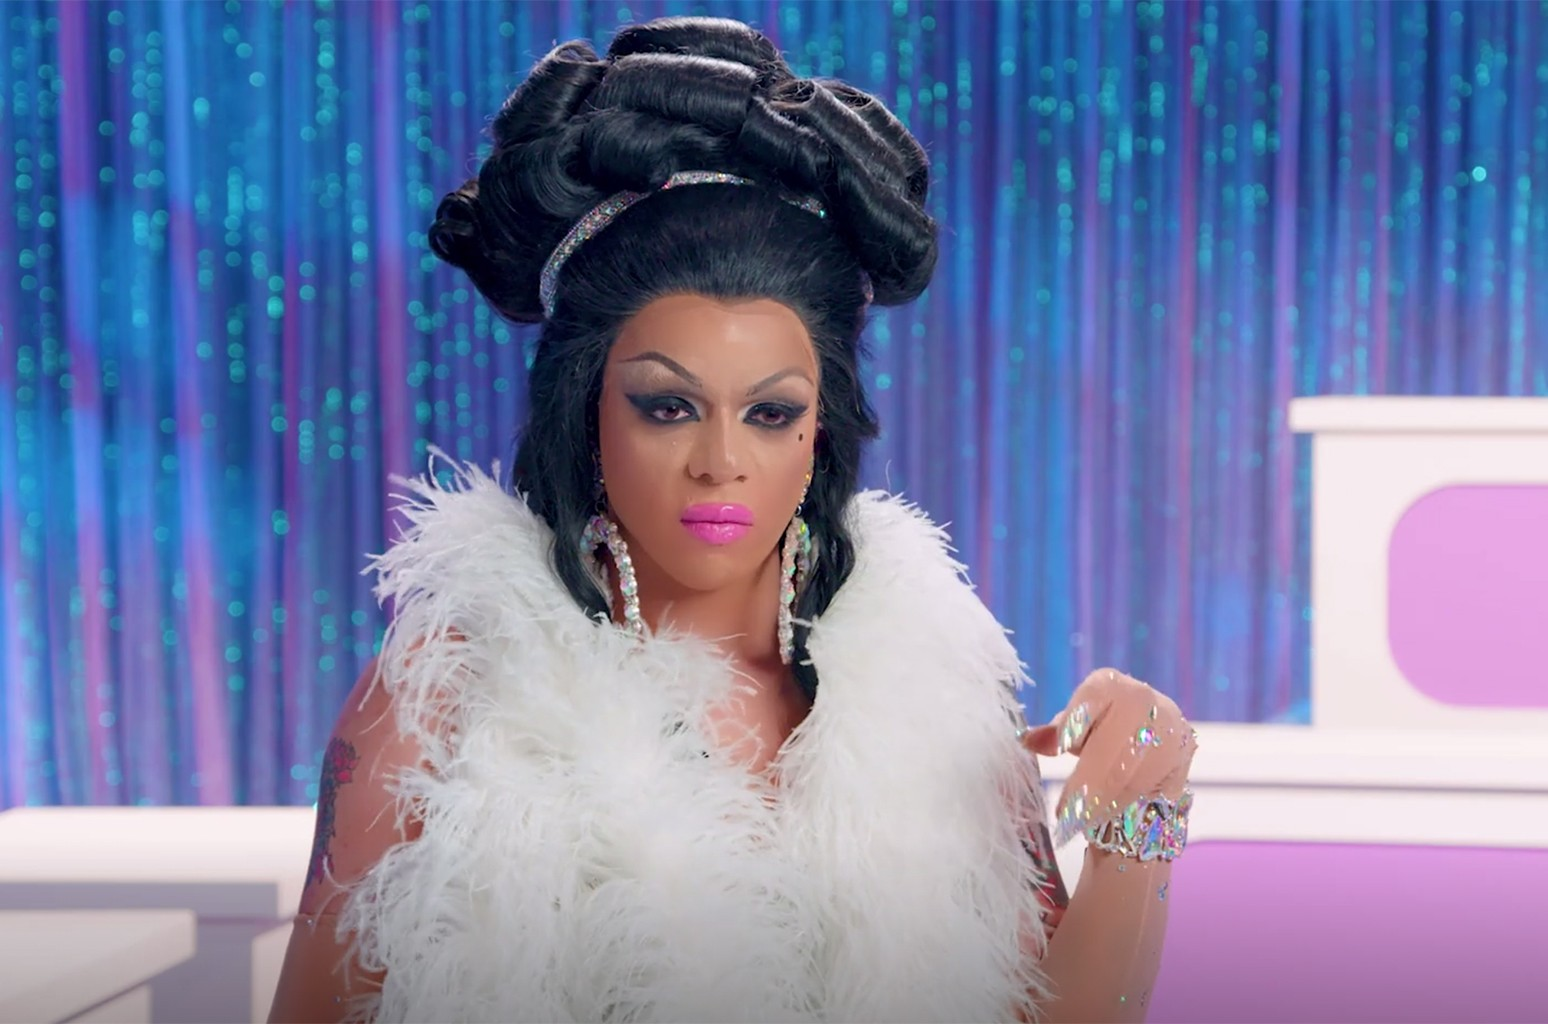 Crystal LaBeija: 5 Things to Know About the Ballroom & Drag Icon |  Billboard | Billboard